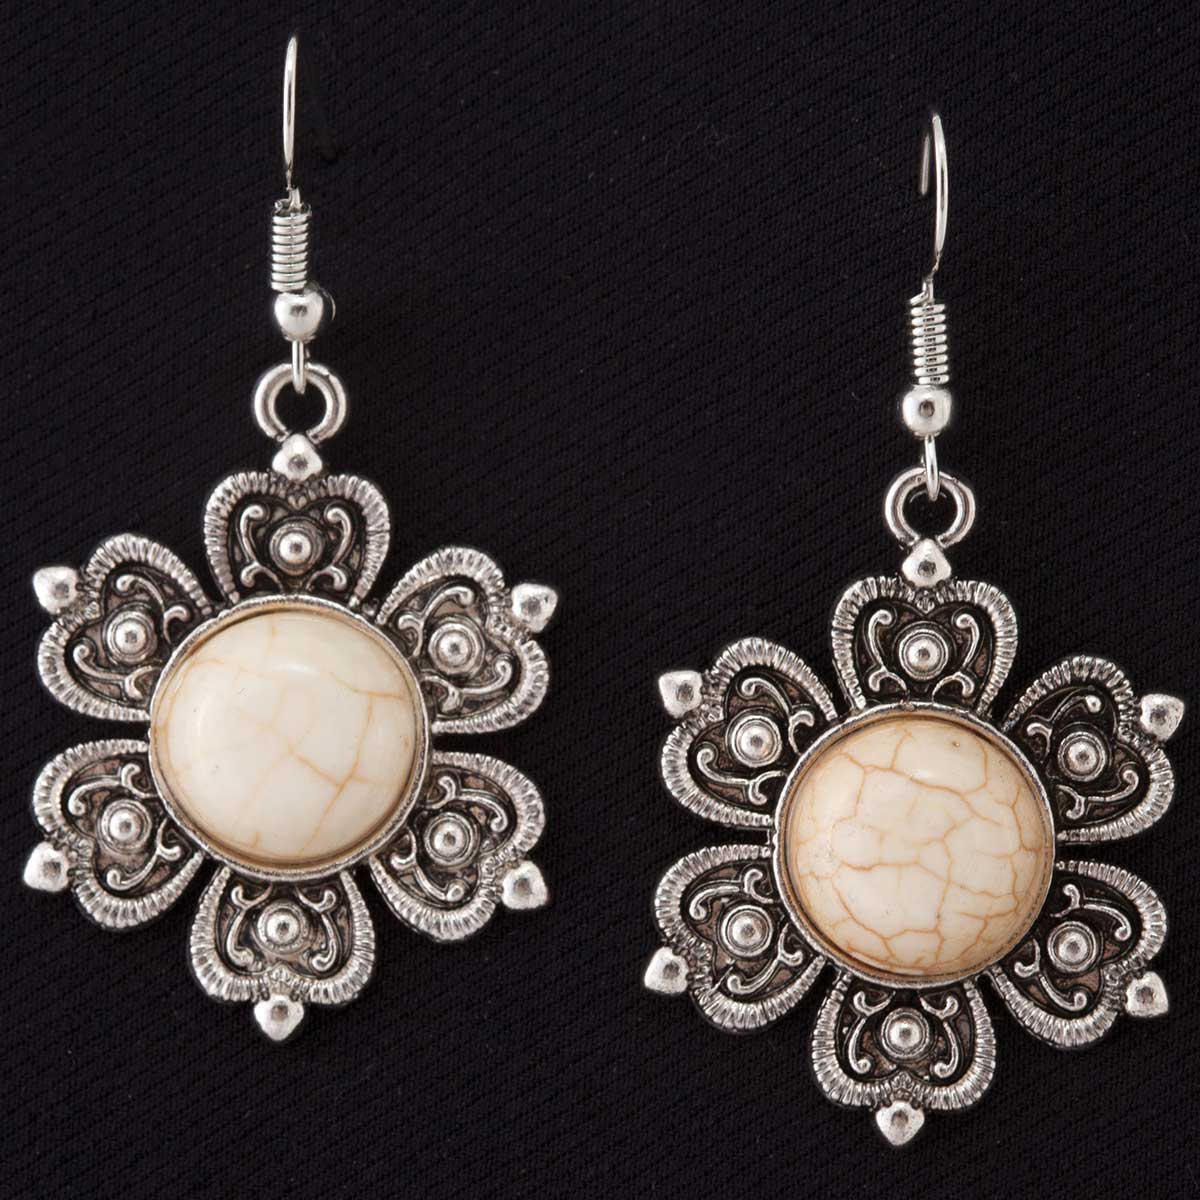 Antique Silver and White Flower Medallion French Wire Earrings